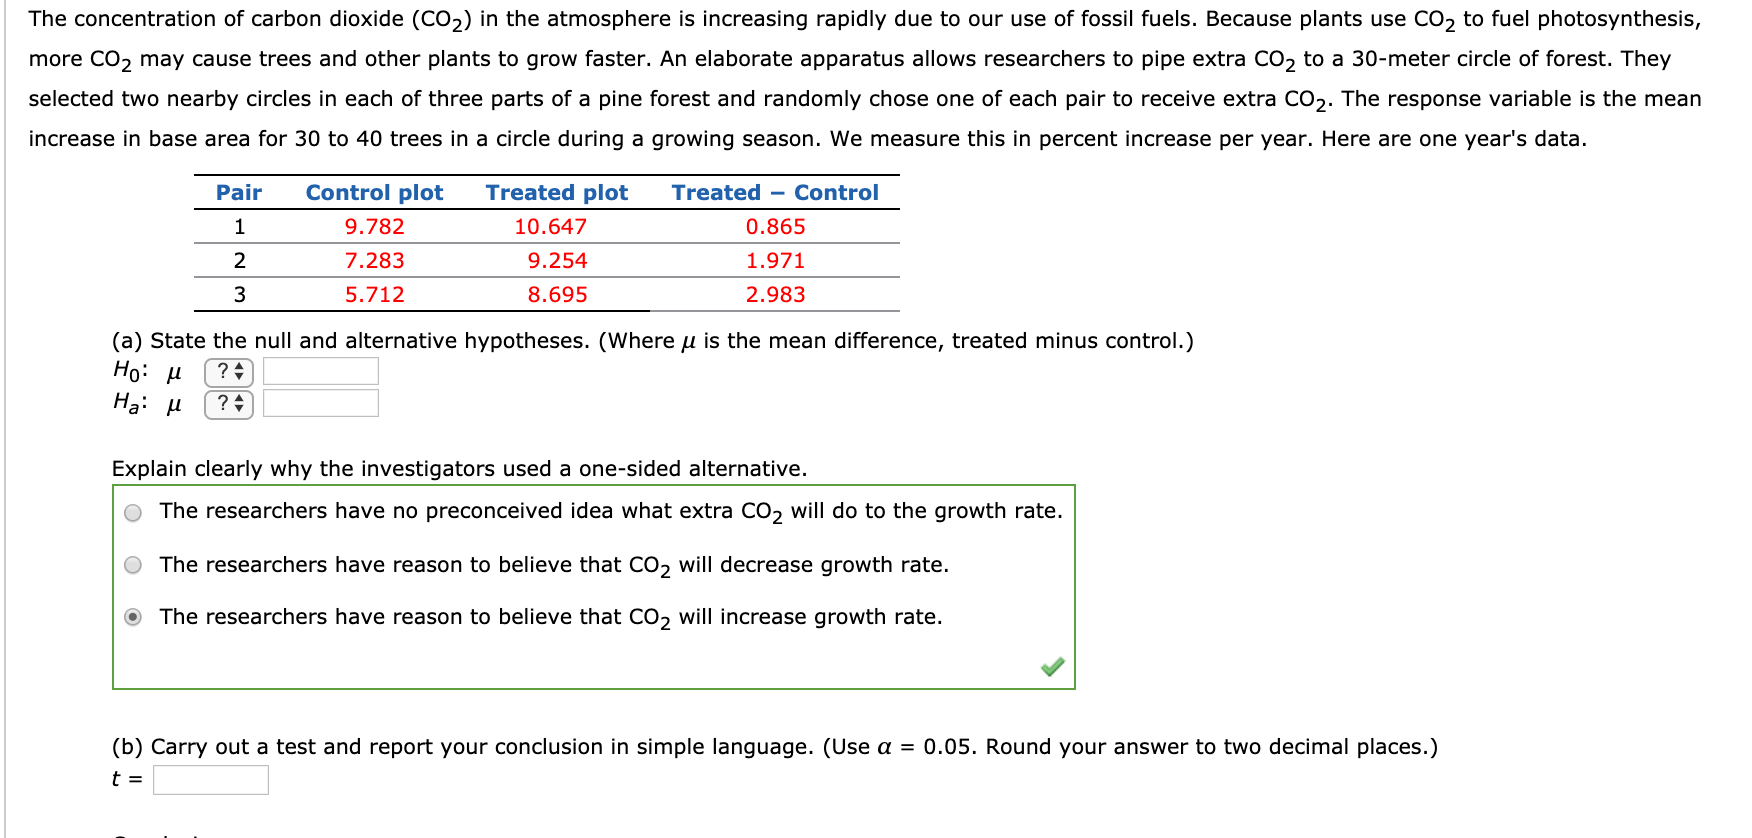 The concentration of carbon dioxide (CO2) in the atmosphere is increasing rapidly due to our use of fossil fuels. Because plants use CO2 to fuel photosynthesis, more CO2 may cause trees and other plants to grow faster. An elaborate apparatus allows researchers to pipe extra CO2 to a 30-meter circle of forest. They selected two nearby circles in each of three parts of a pine forest and randomly chose one of each pair to receive extra CO2. The response variable is the mean increase in base area for 30 to 40 trees in a circle during a growing season. We measure this in percent increase per year. Here are one year's data. Pair Control plot Treated plot Treated - Control 9.782 10.647 0.865 2 7.283 9.254 1.971 3 5.712 8.695 2.983 (a) State the null and alternative hypotheses. (Where u is the mean difference, treated minus control.) Но: и На: и ? : Explain clearly why the investigators used a one-sided alternative. The researchers have no preconceived idea what extra CO2 will do to the growth rate. The researchers have reason to believe that CO2 will decrease growth rate. The researchers have reason to believe that CO, will increase growth rate. (b) Carry out a test and report your conclusion in simple language. (Use a = 0.05. Round your answer to two decimal places.) t =